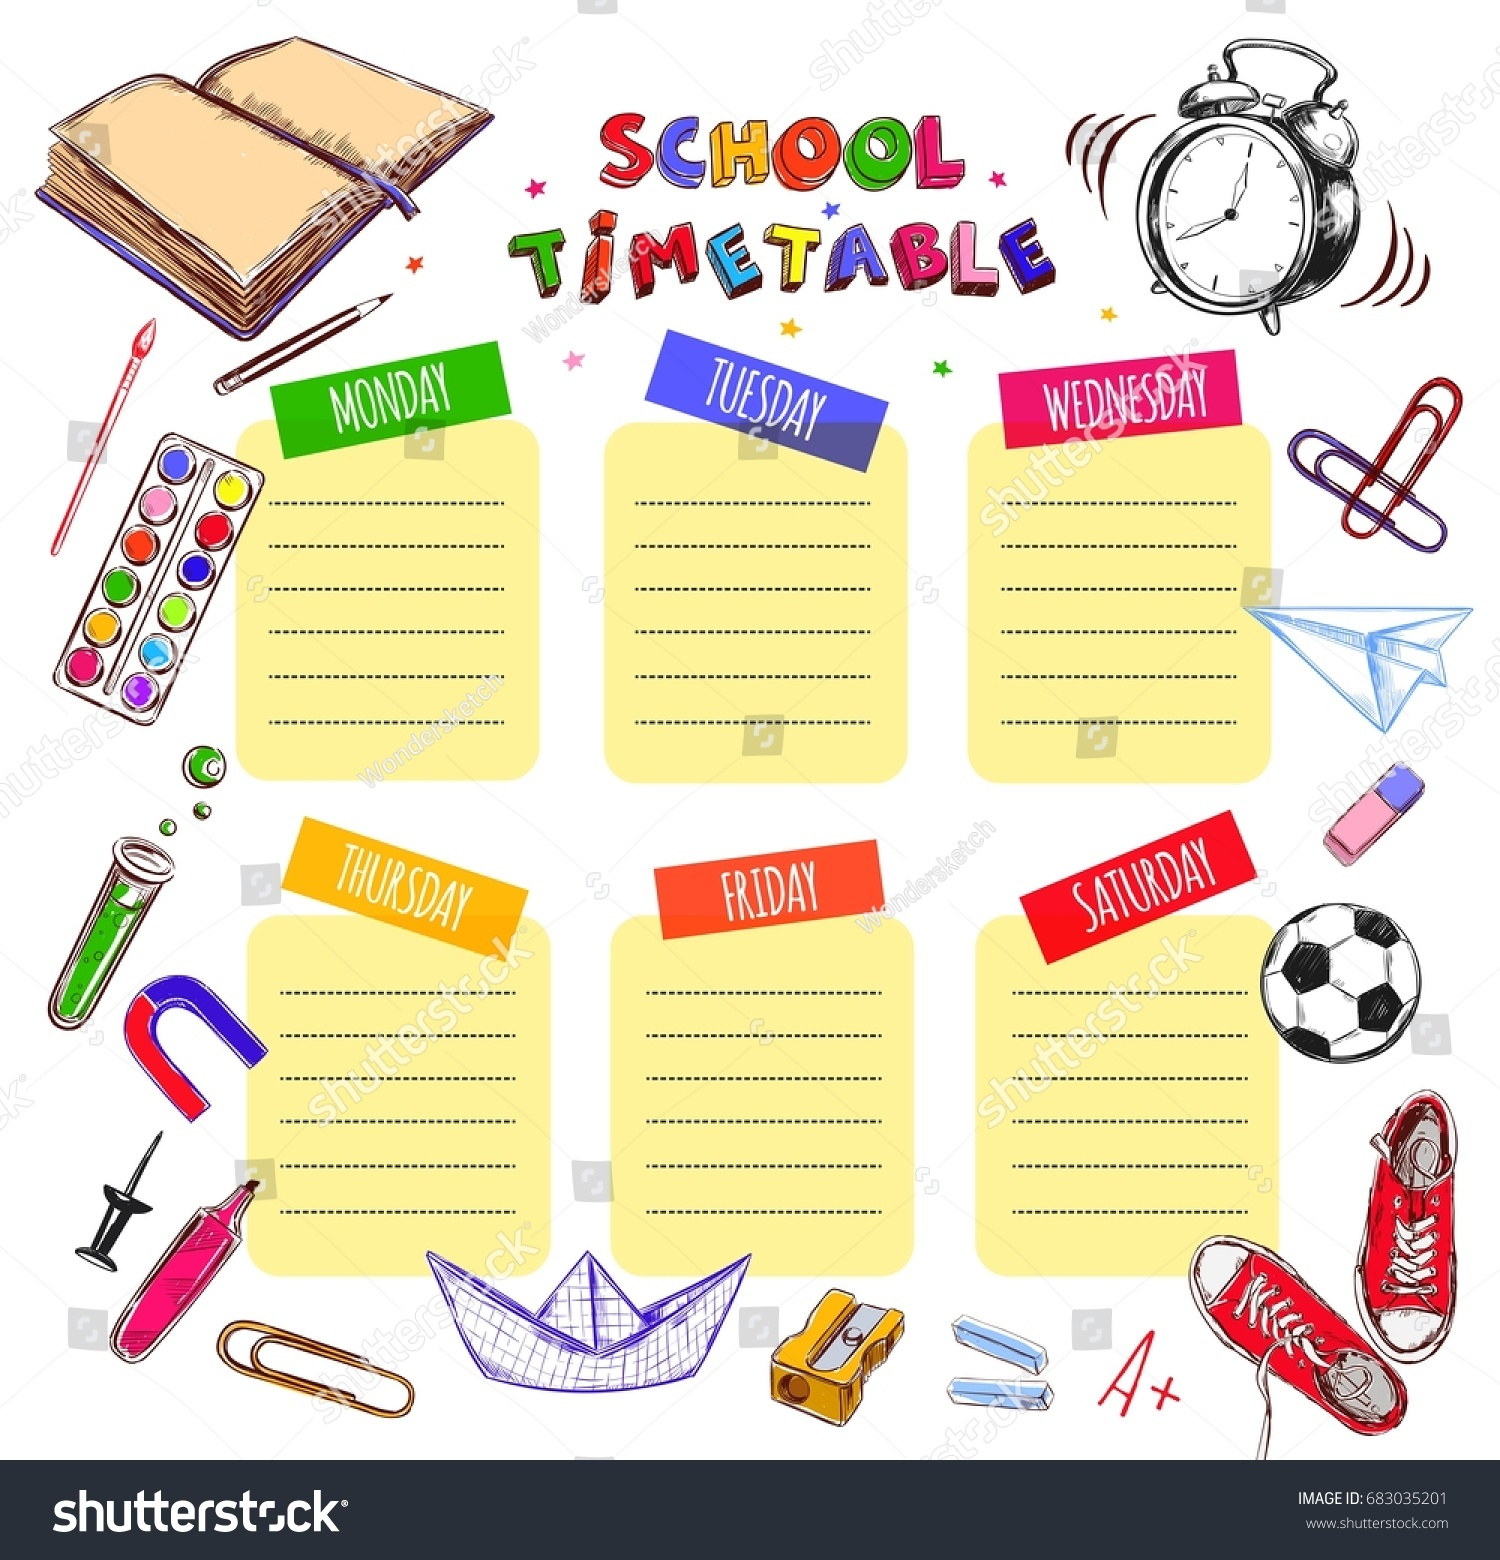 Template School Timetable Students Pupils sample resume for educators – Timetable Template School